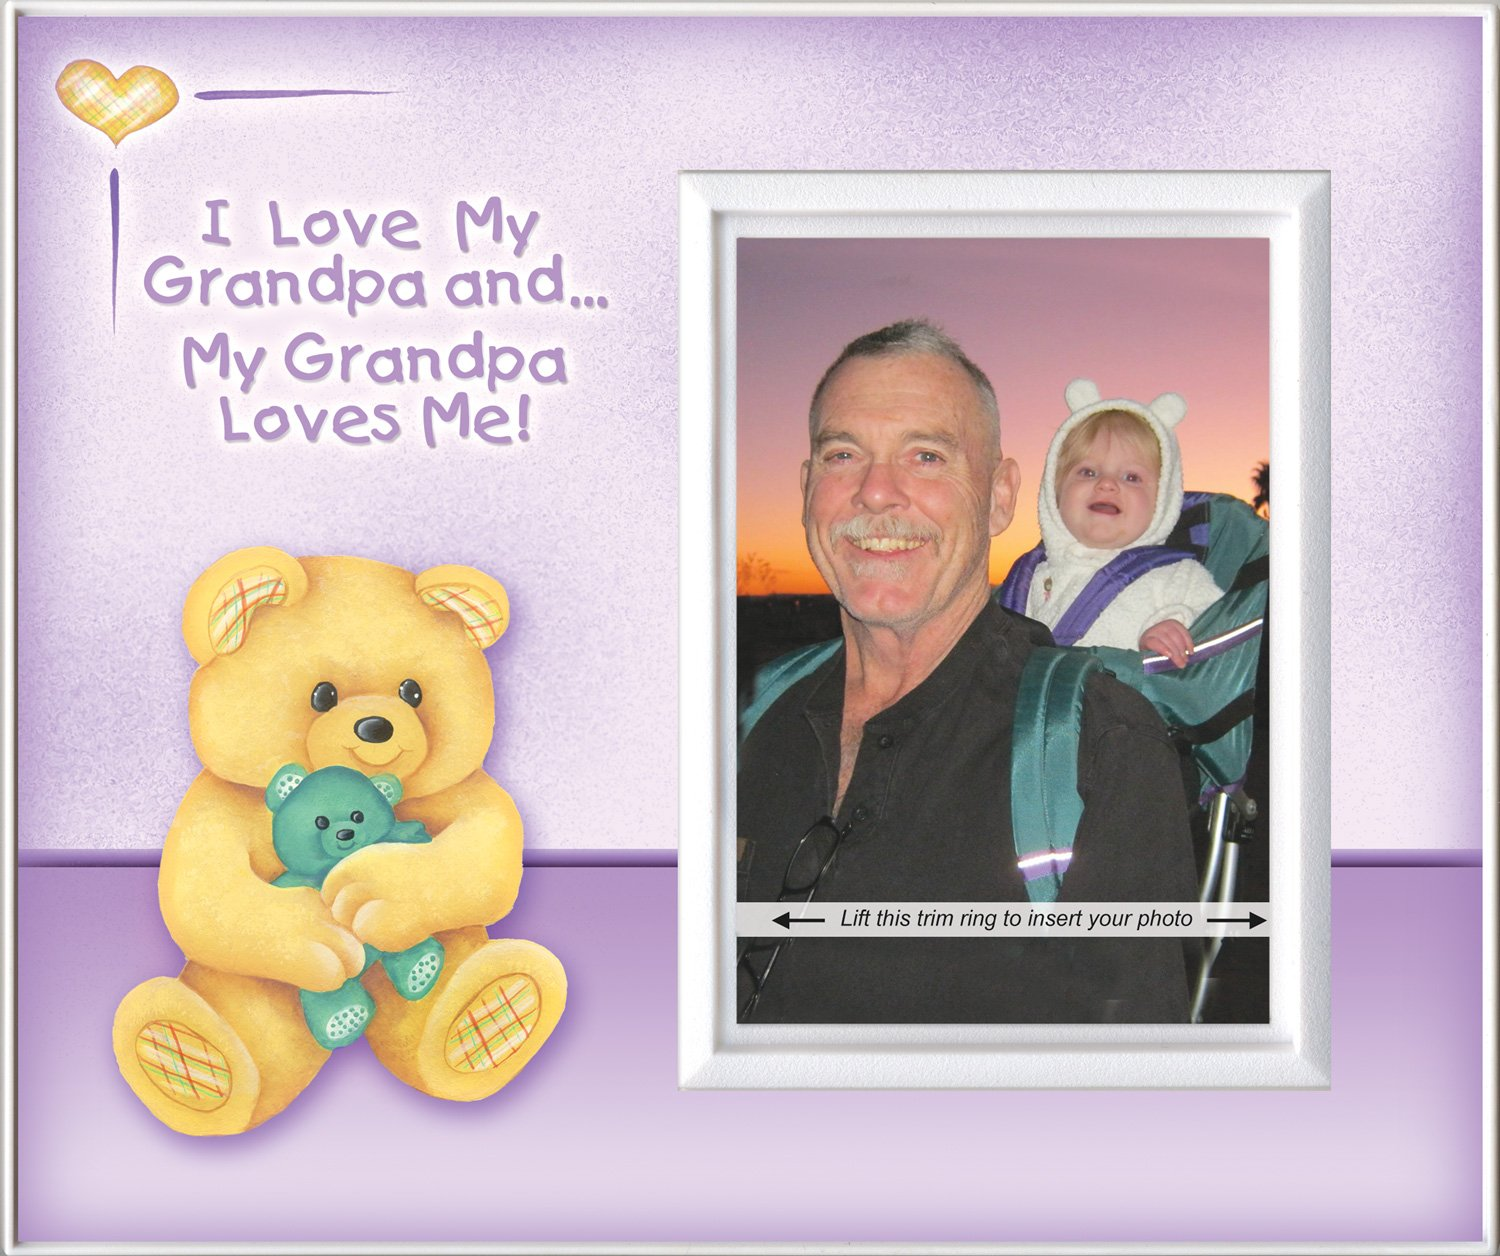 Amazon.com : I Love Grandpa & Grandpa Loves Me! - Picture Frame Gift ...